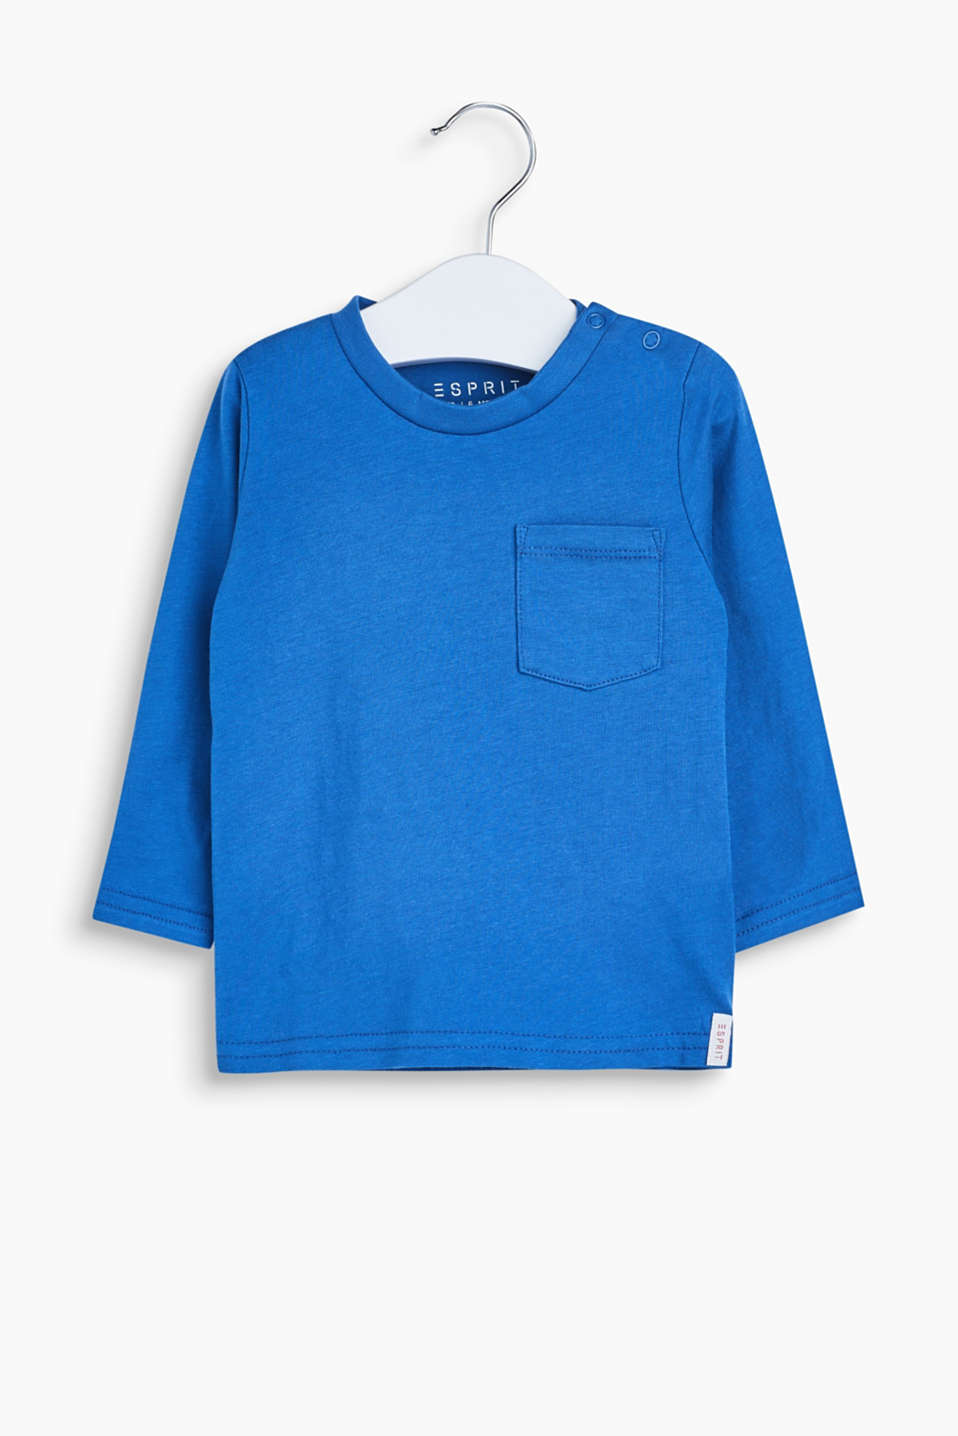 Made of soft melange jersey: long sleeve top with a breast pocket